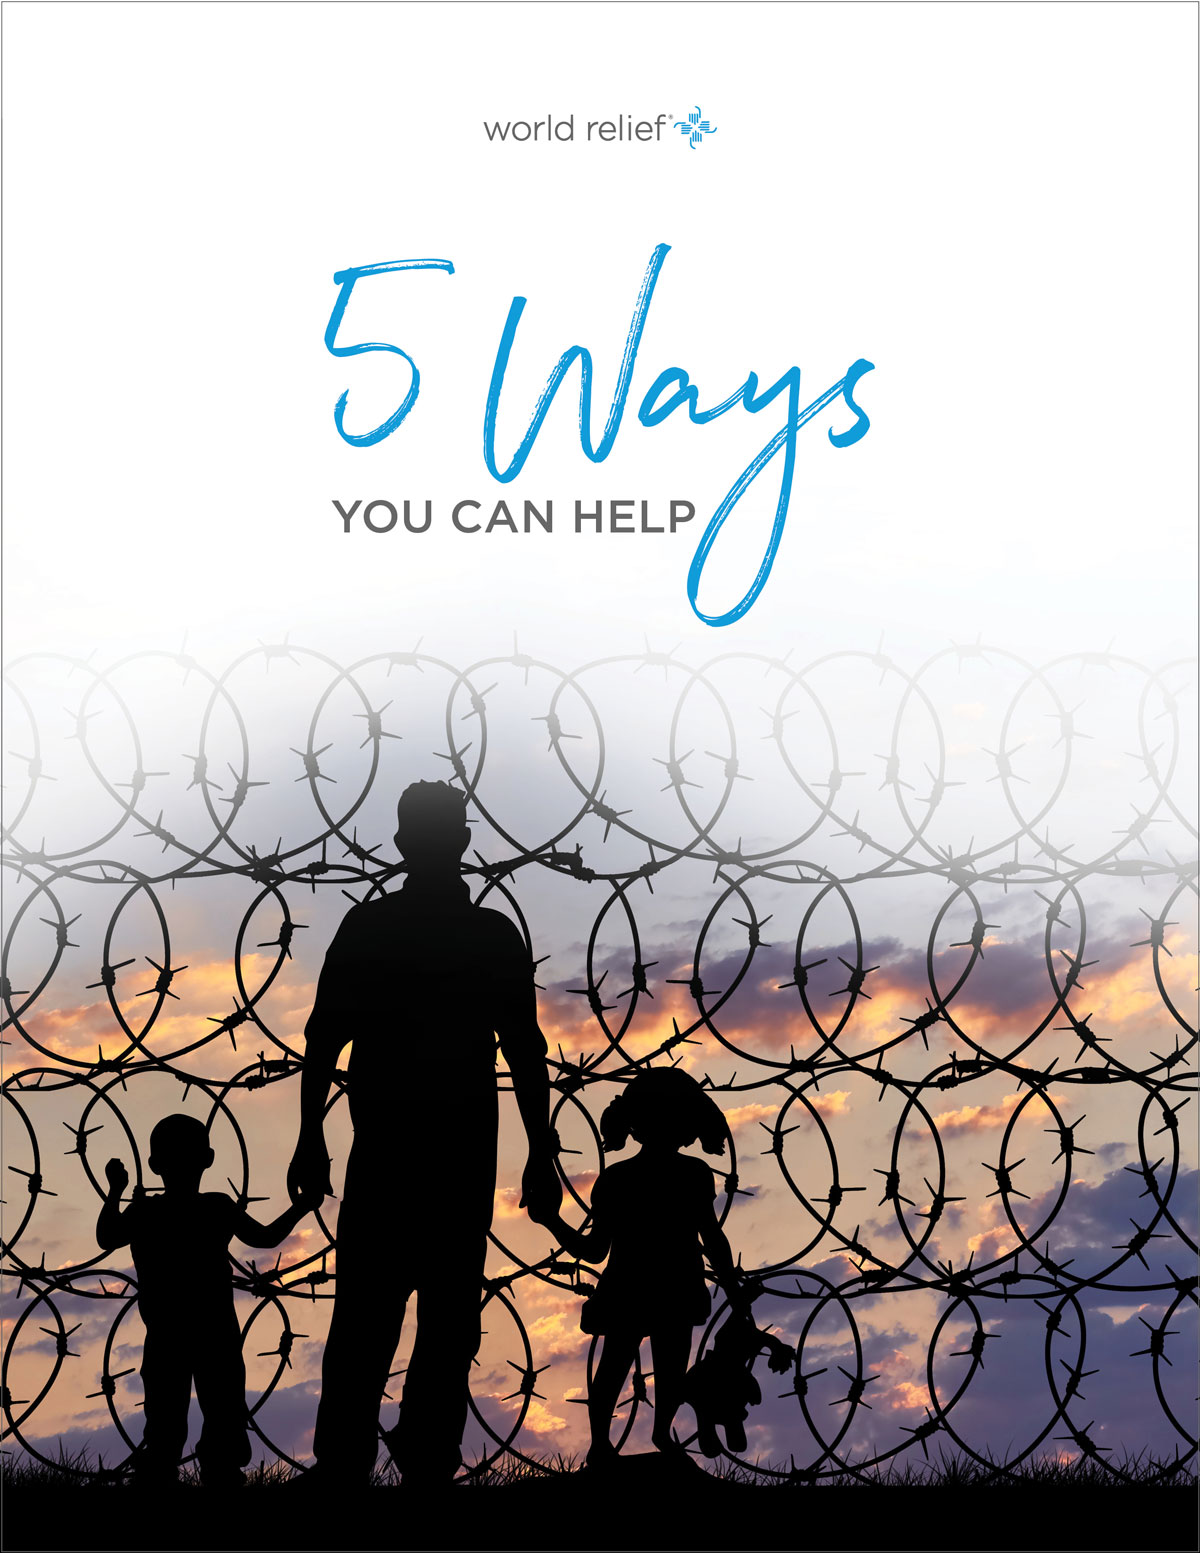 World-Relief_5-Ways-You-Can-Help_cover-line.jpg